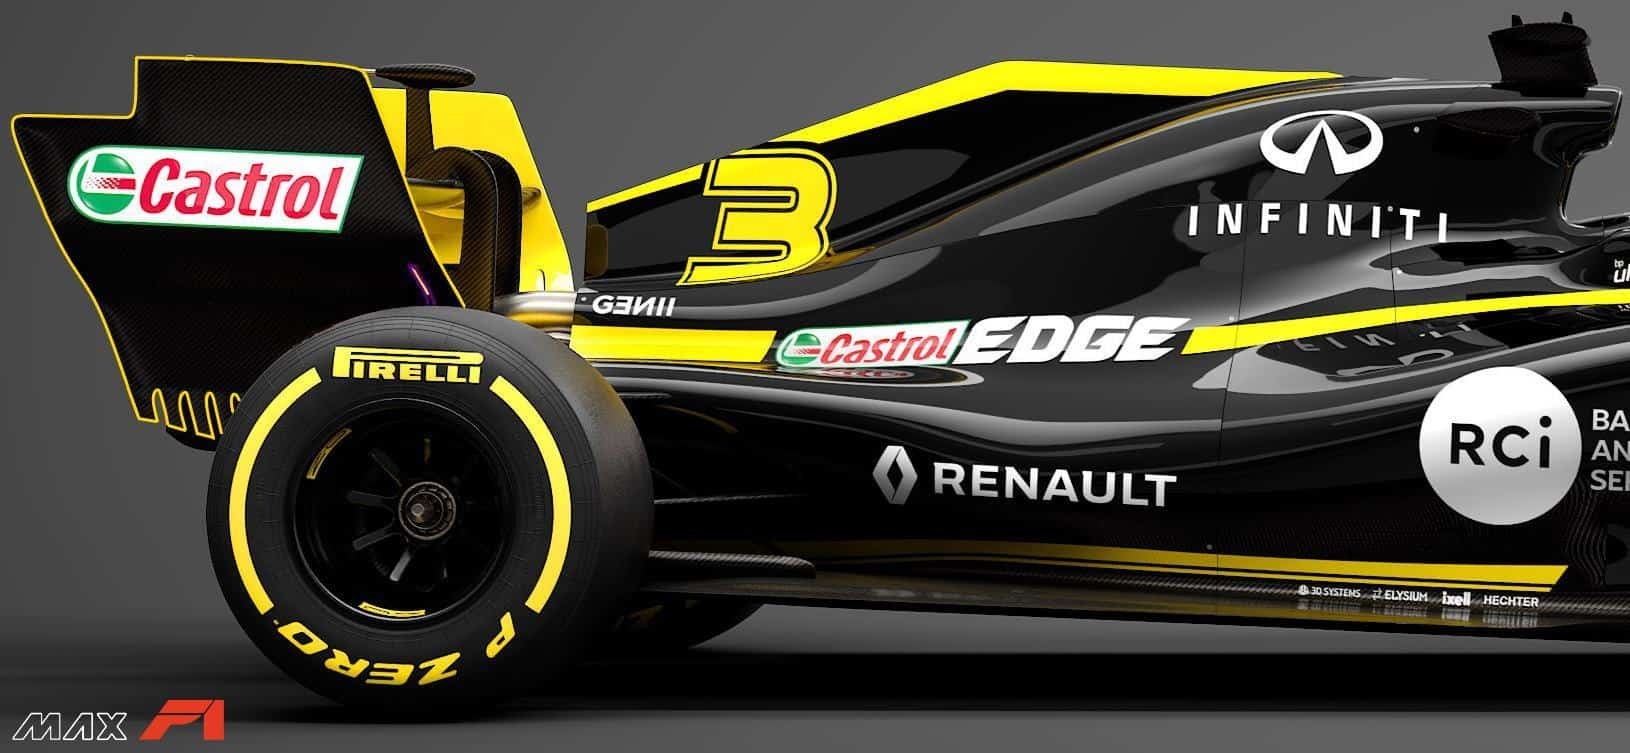 2019 Renault RS19 rear wing rear end engine cover side Photo Renault edited by MAXF1net